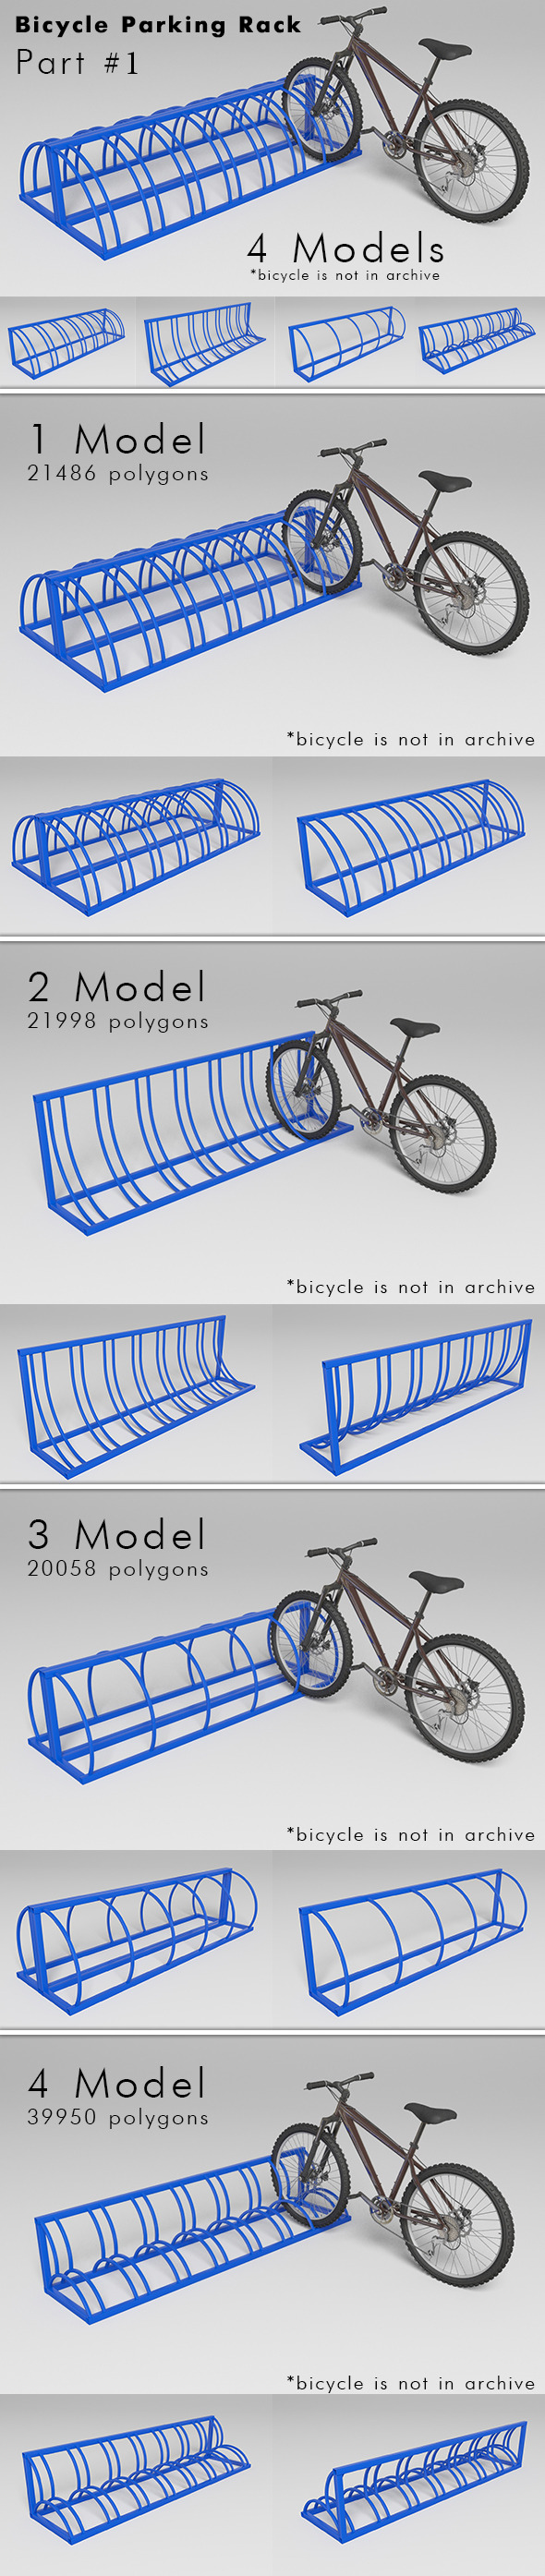 3DOcean Bicycle Parking Rack Part #1 10002766